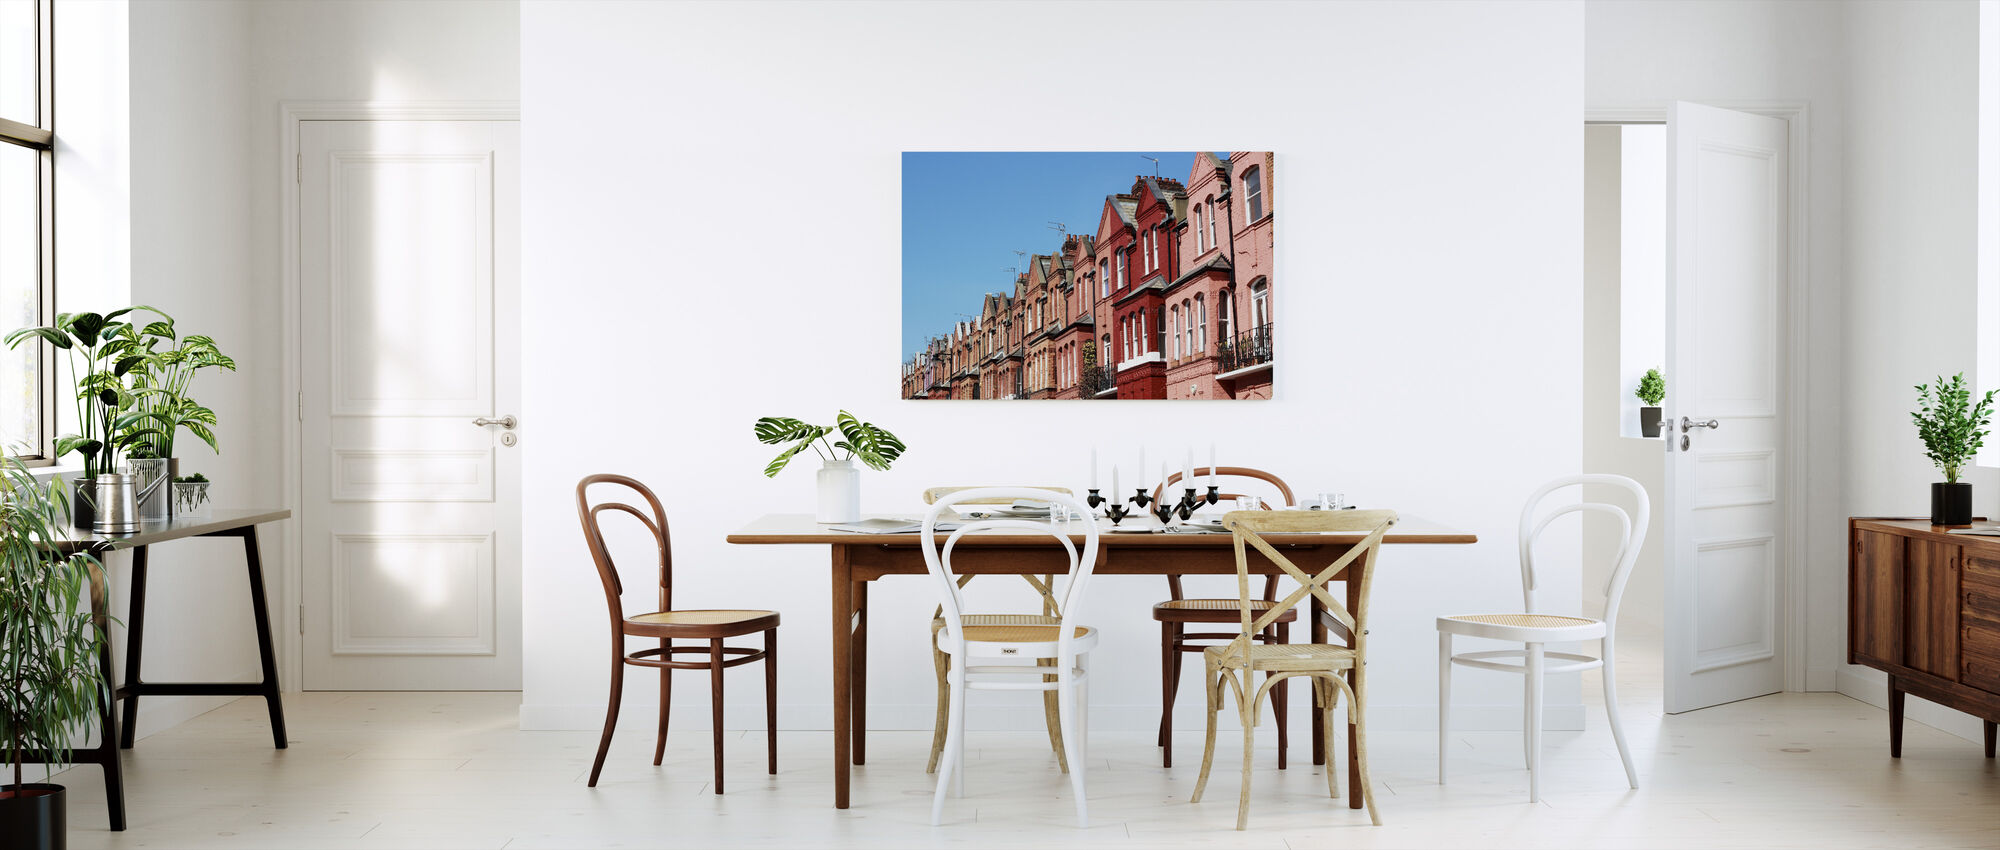 Coral Colored Houses in London - Canvas print - Kitchen